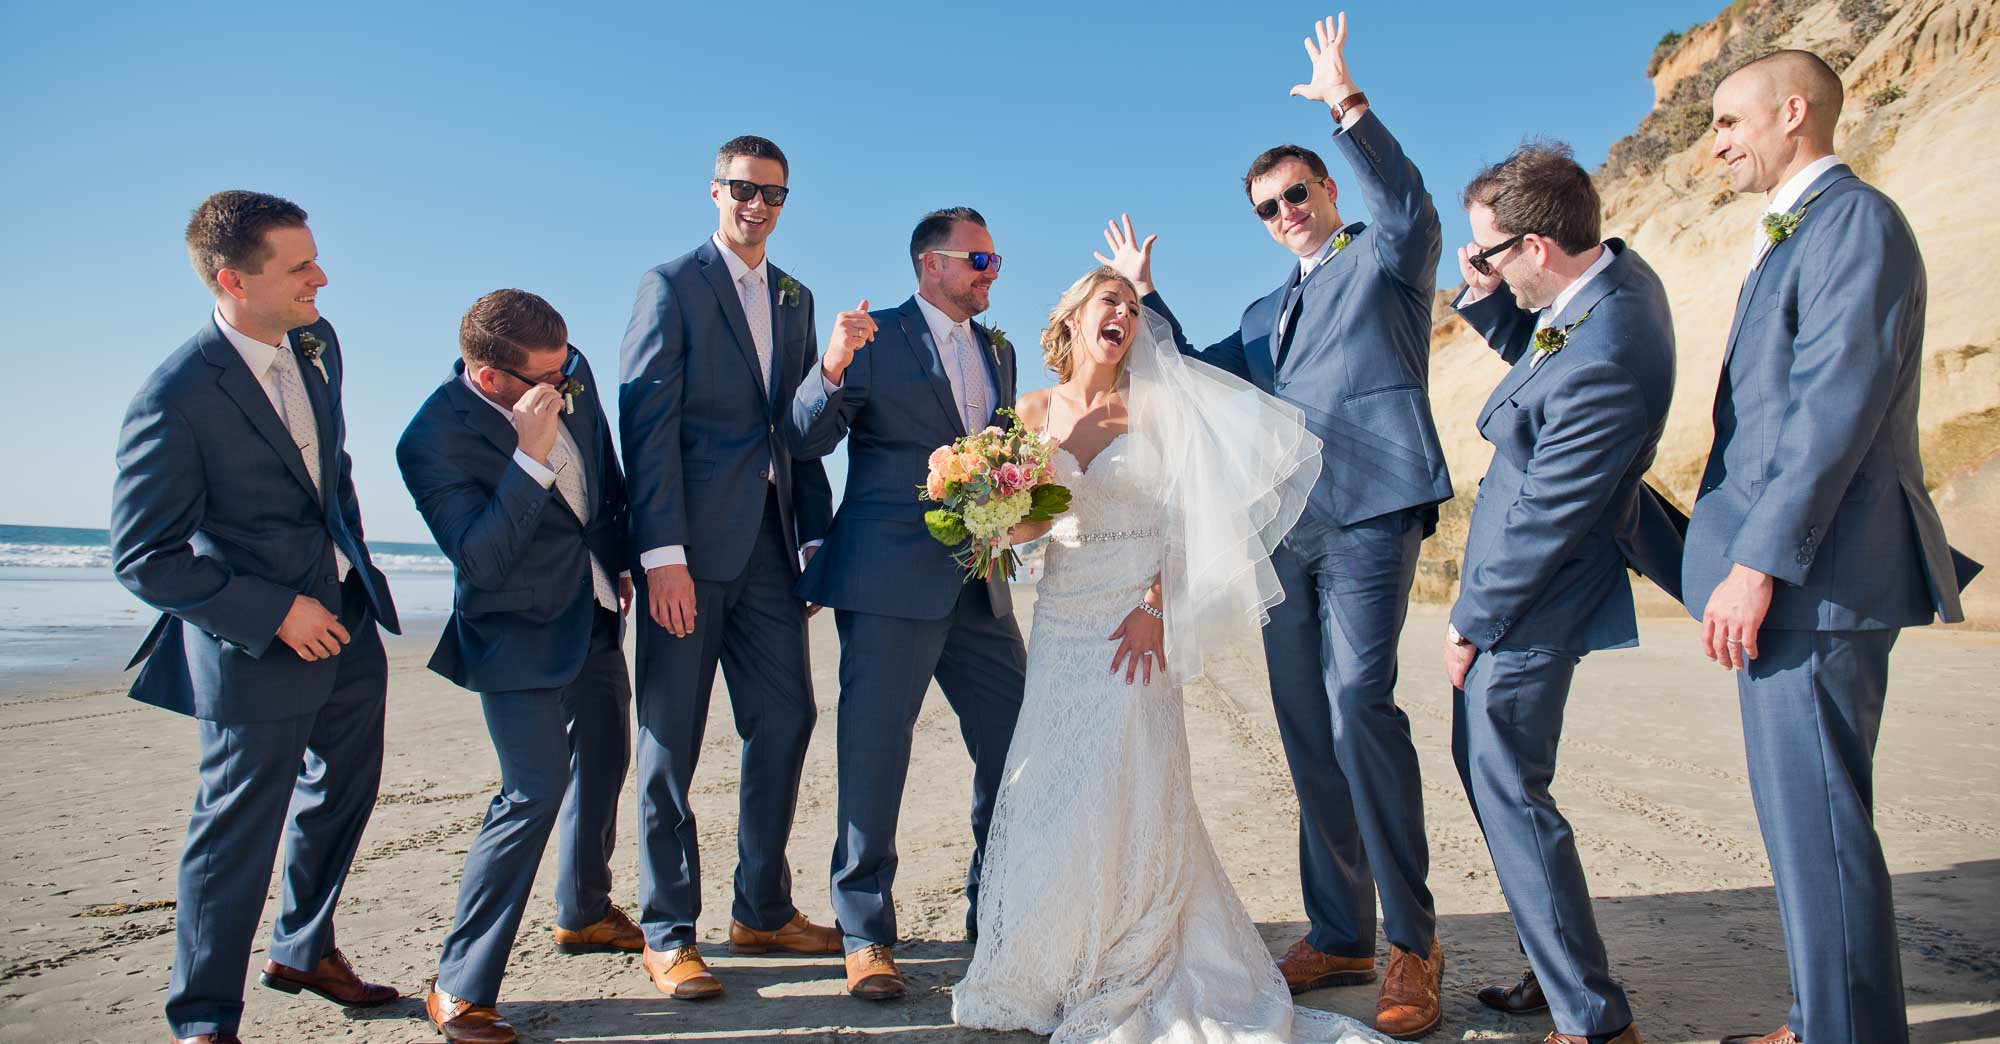 Ashley & Eric's Solana Beach Wedding featured slider image